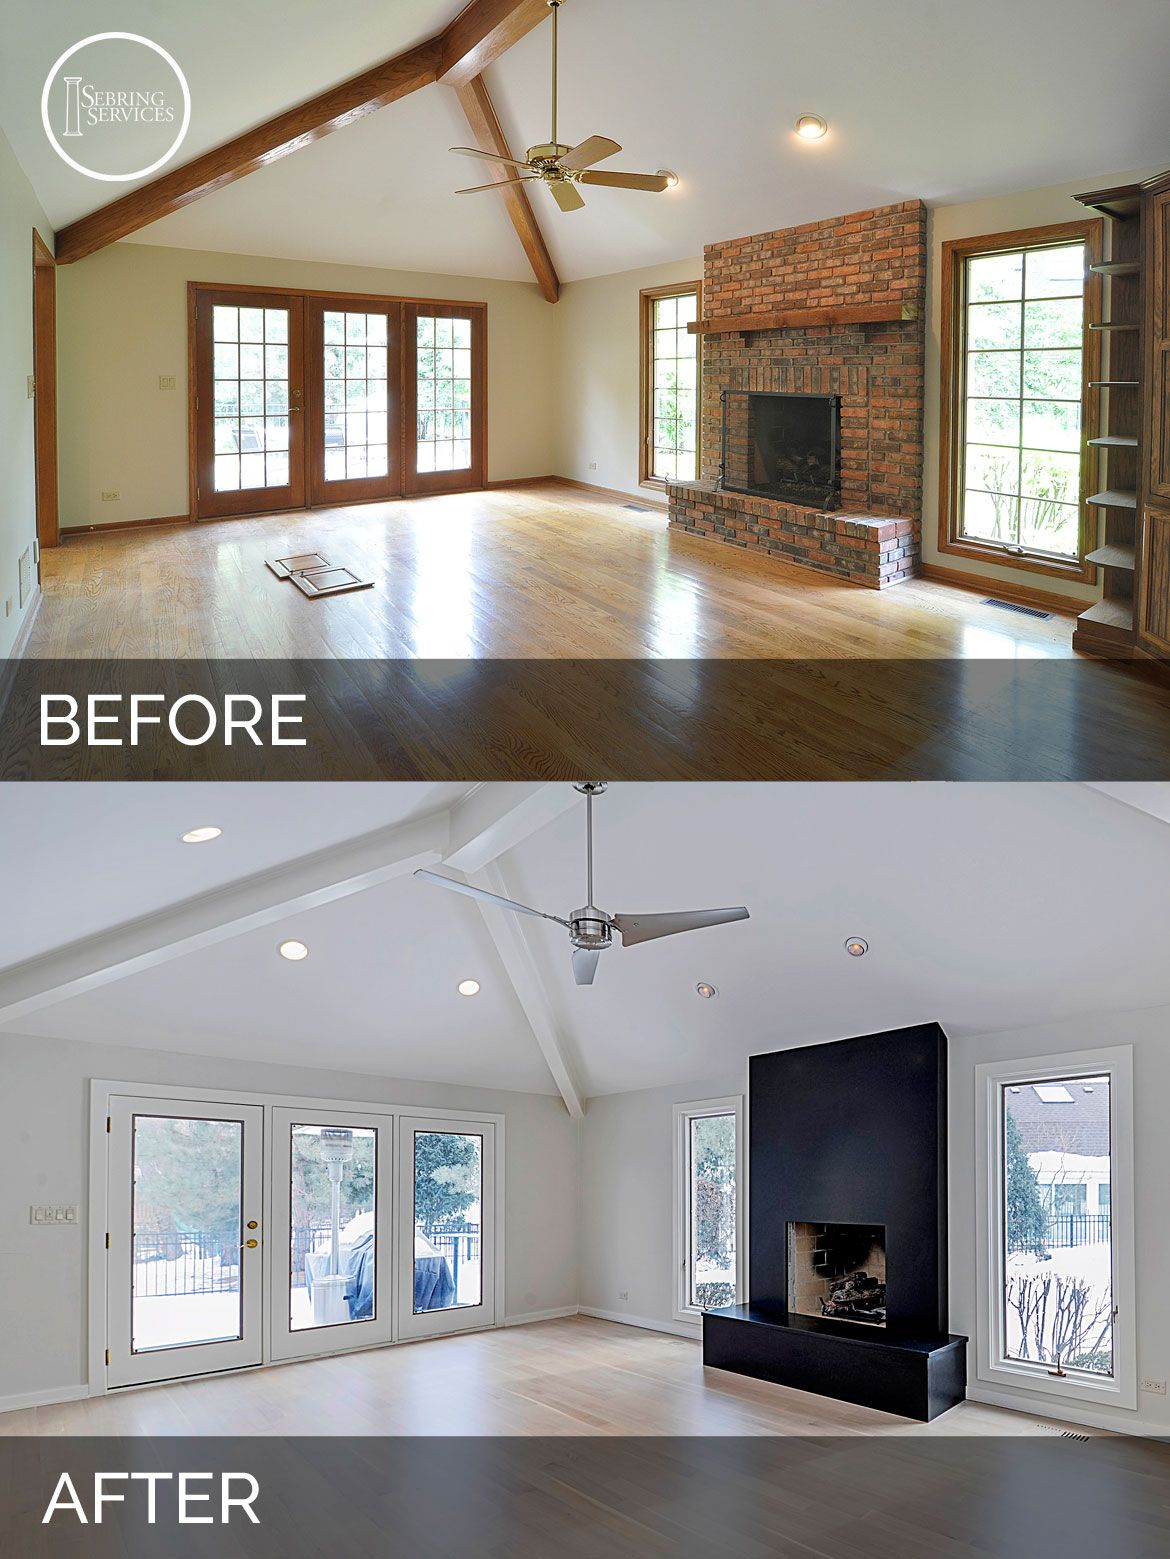 jeff & betsy's kitchen before & after pictures | home design | home